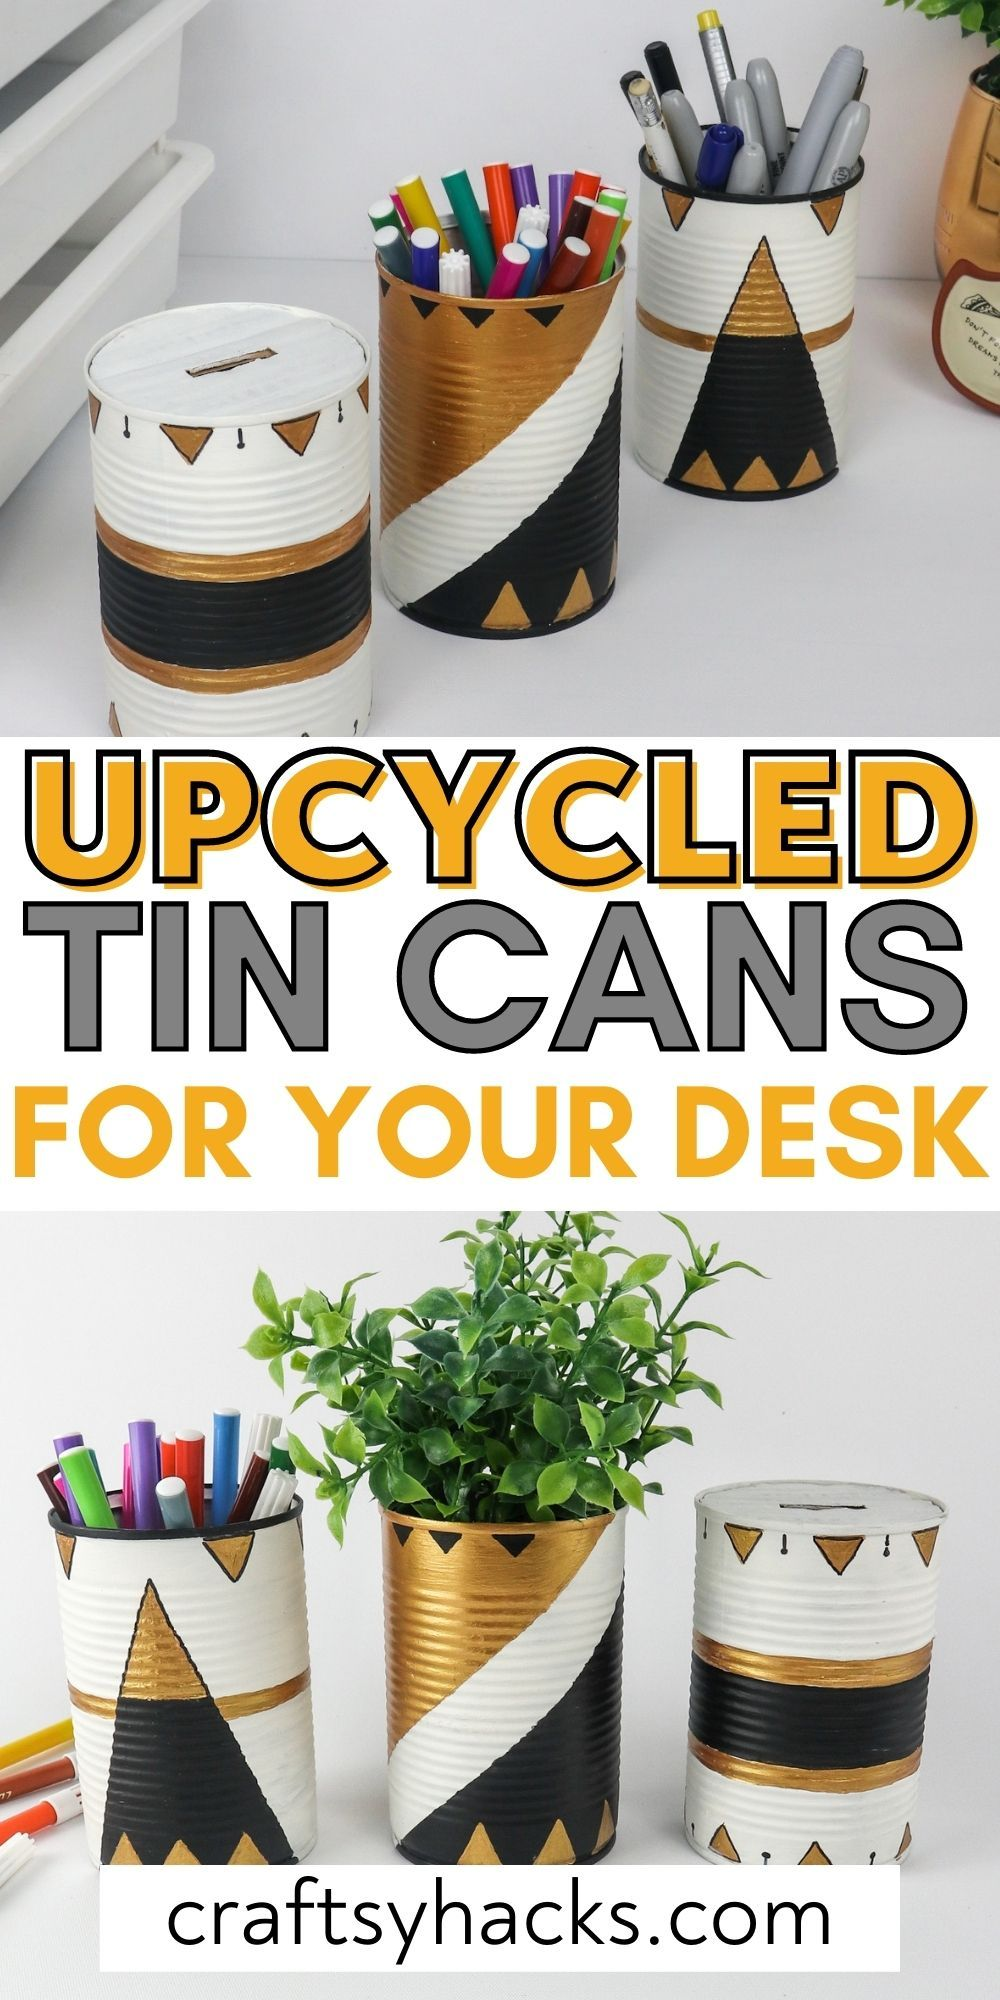 upcycled tin cans for your desk